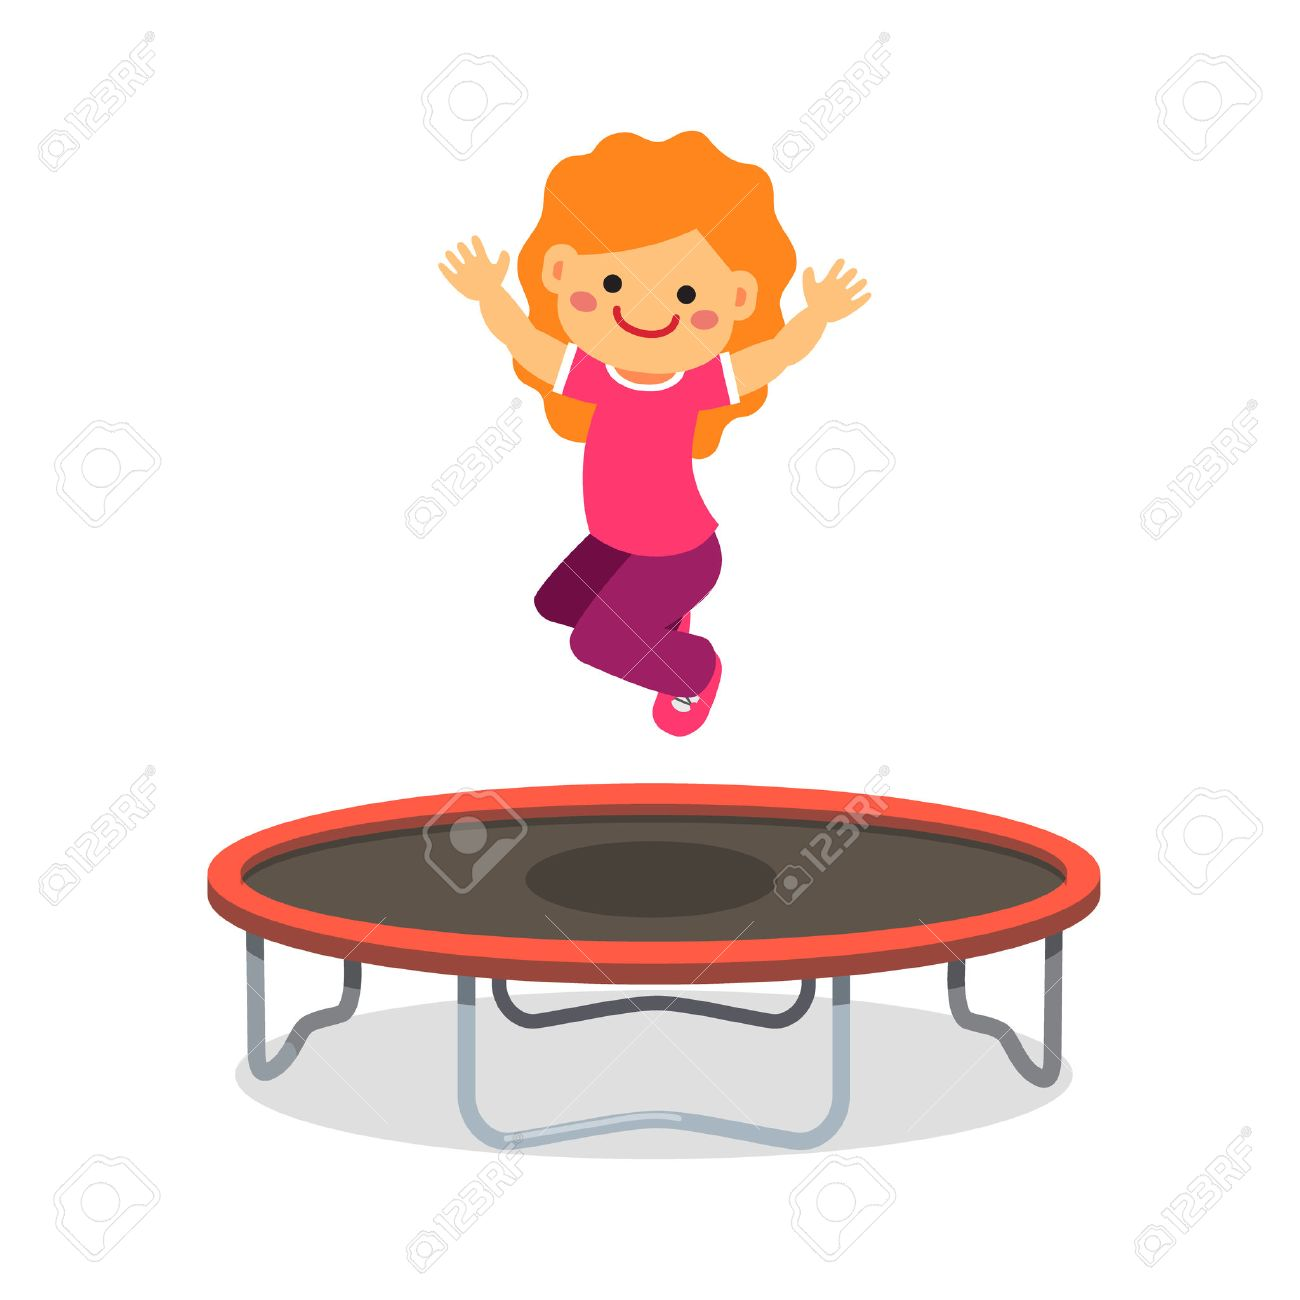 1,977 Trampoline Stock Vector Illustration And Royalty Free.